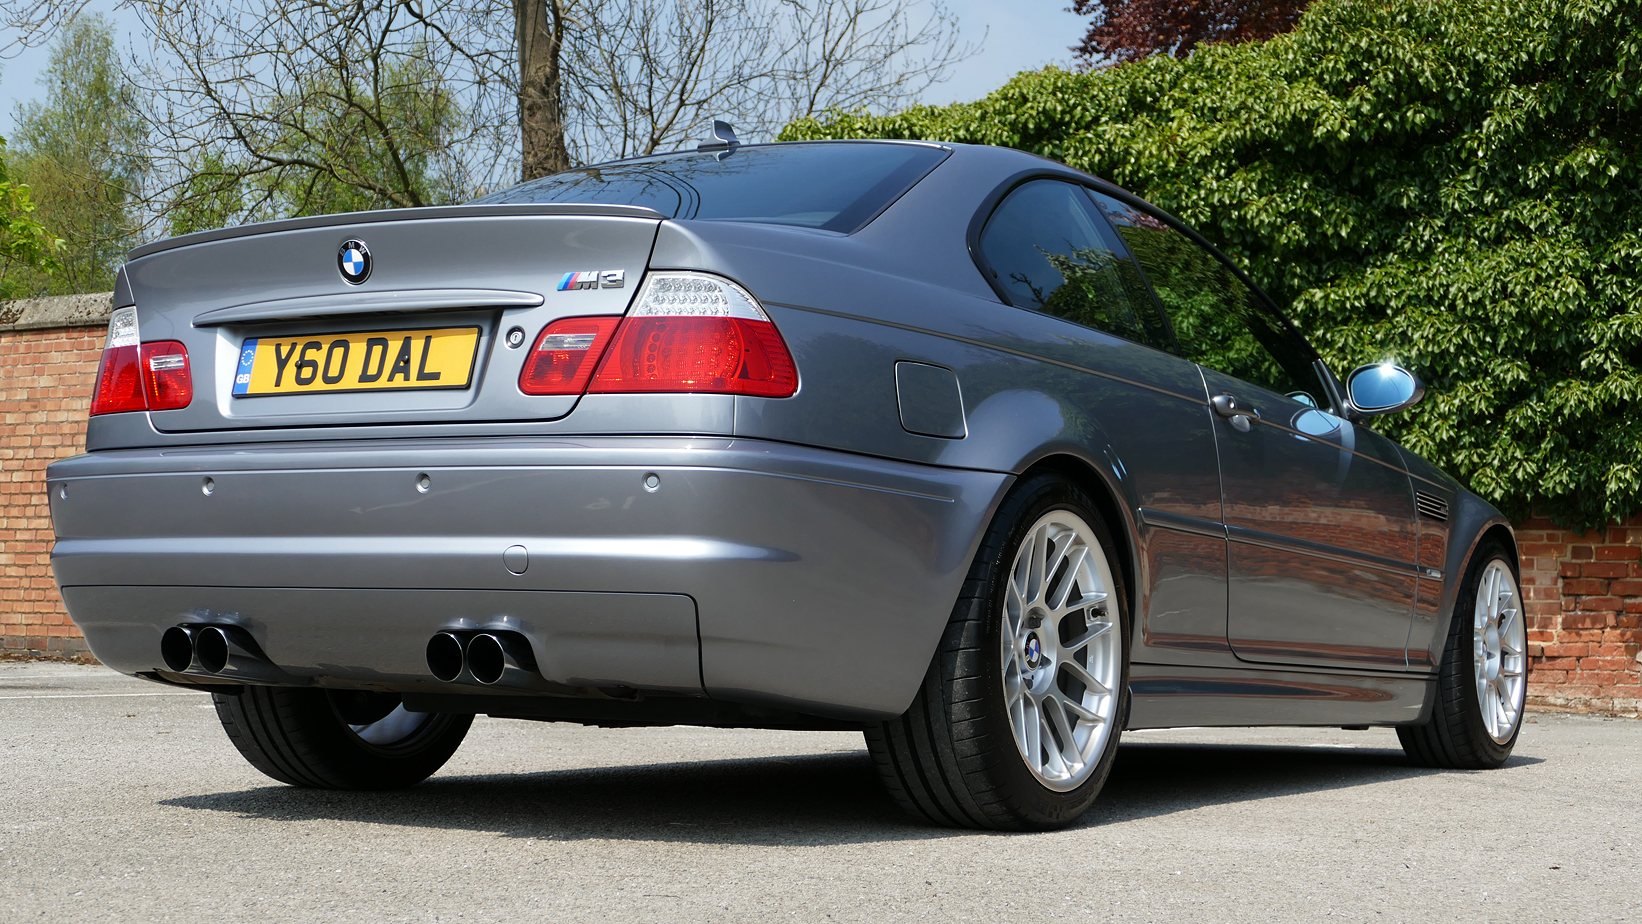 2003 e46 m3 smg facelift in silver grey the m3cutters uk bmw m3 group forum. Black Bedroom Furniture Sets. Home Design Ideas